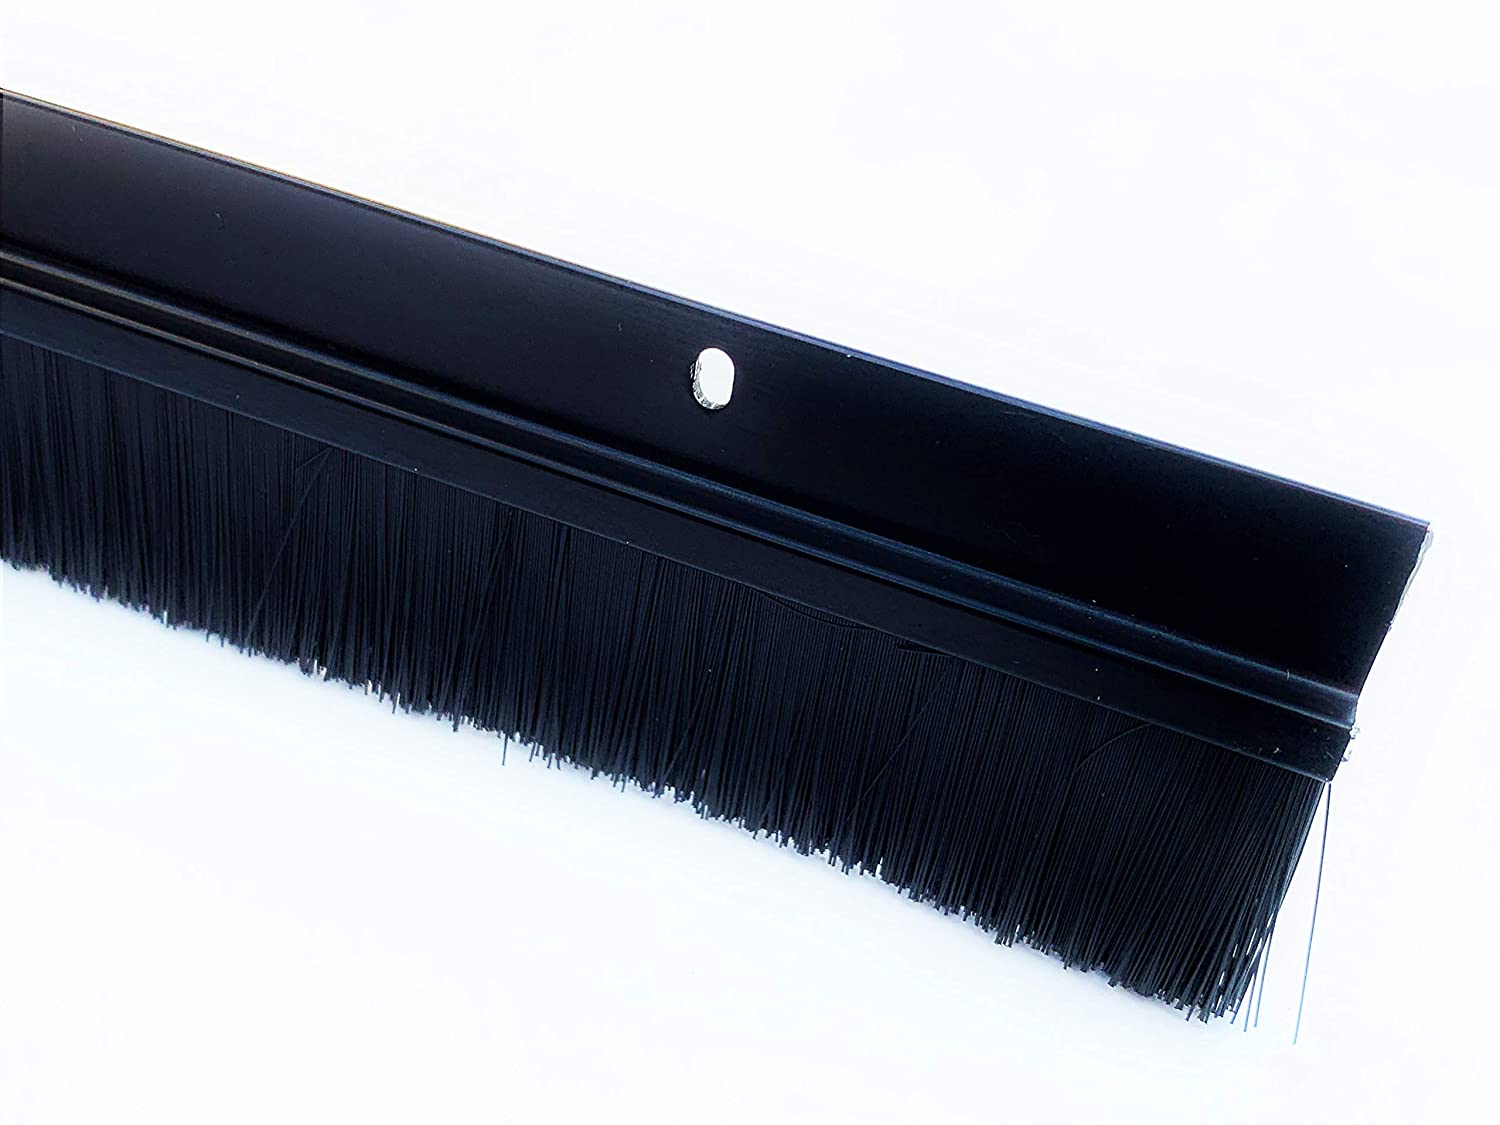 48 Long 4 FT 4 FT Black Brush Sweep for Gaps up to 1 1//2 Made in USA by Randall Manufacturing BS-220-BLK